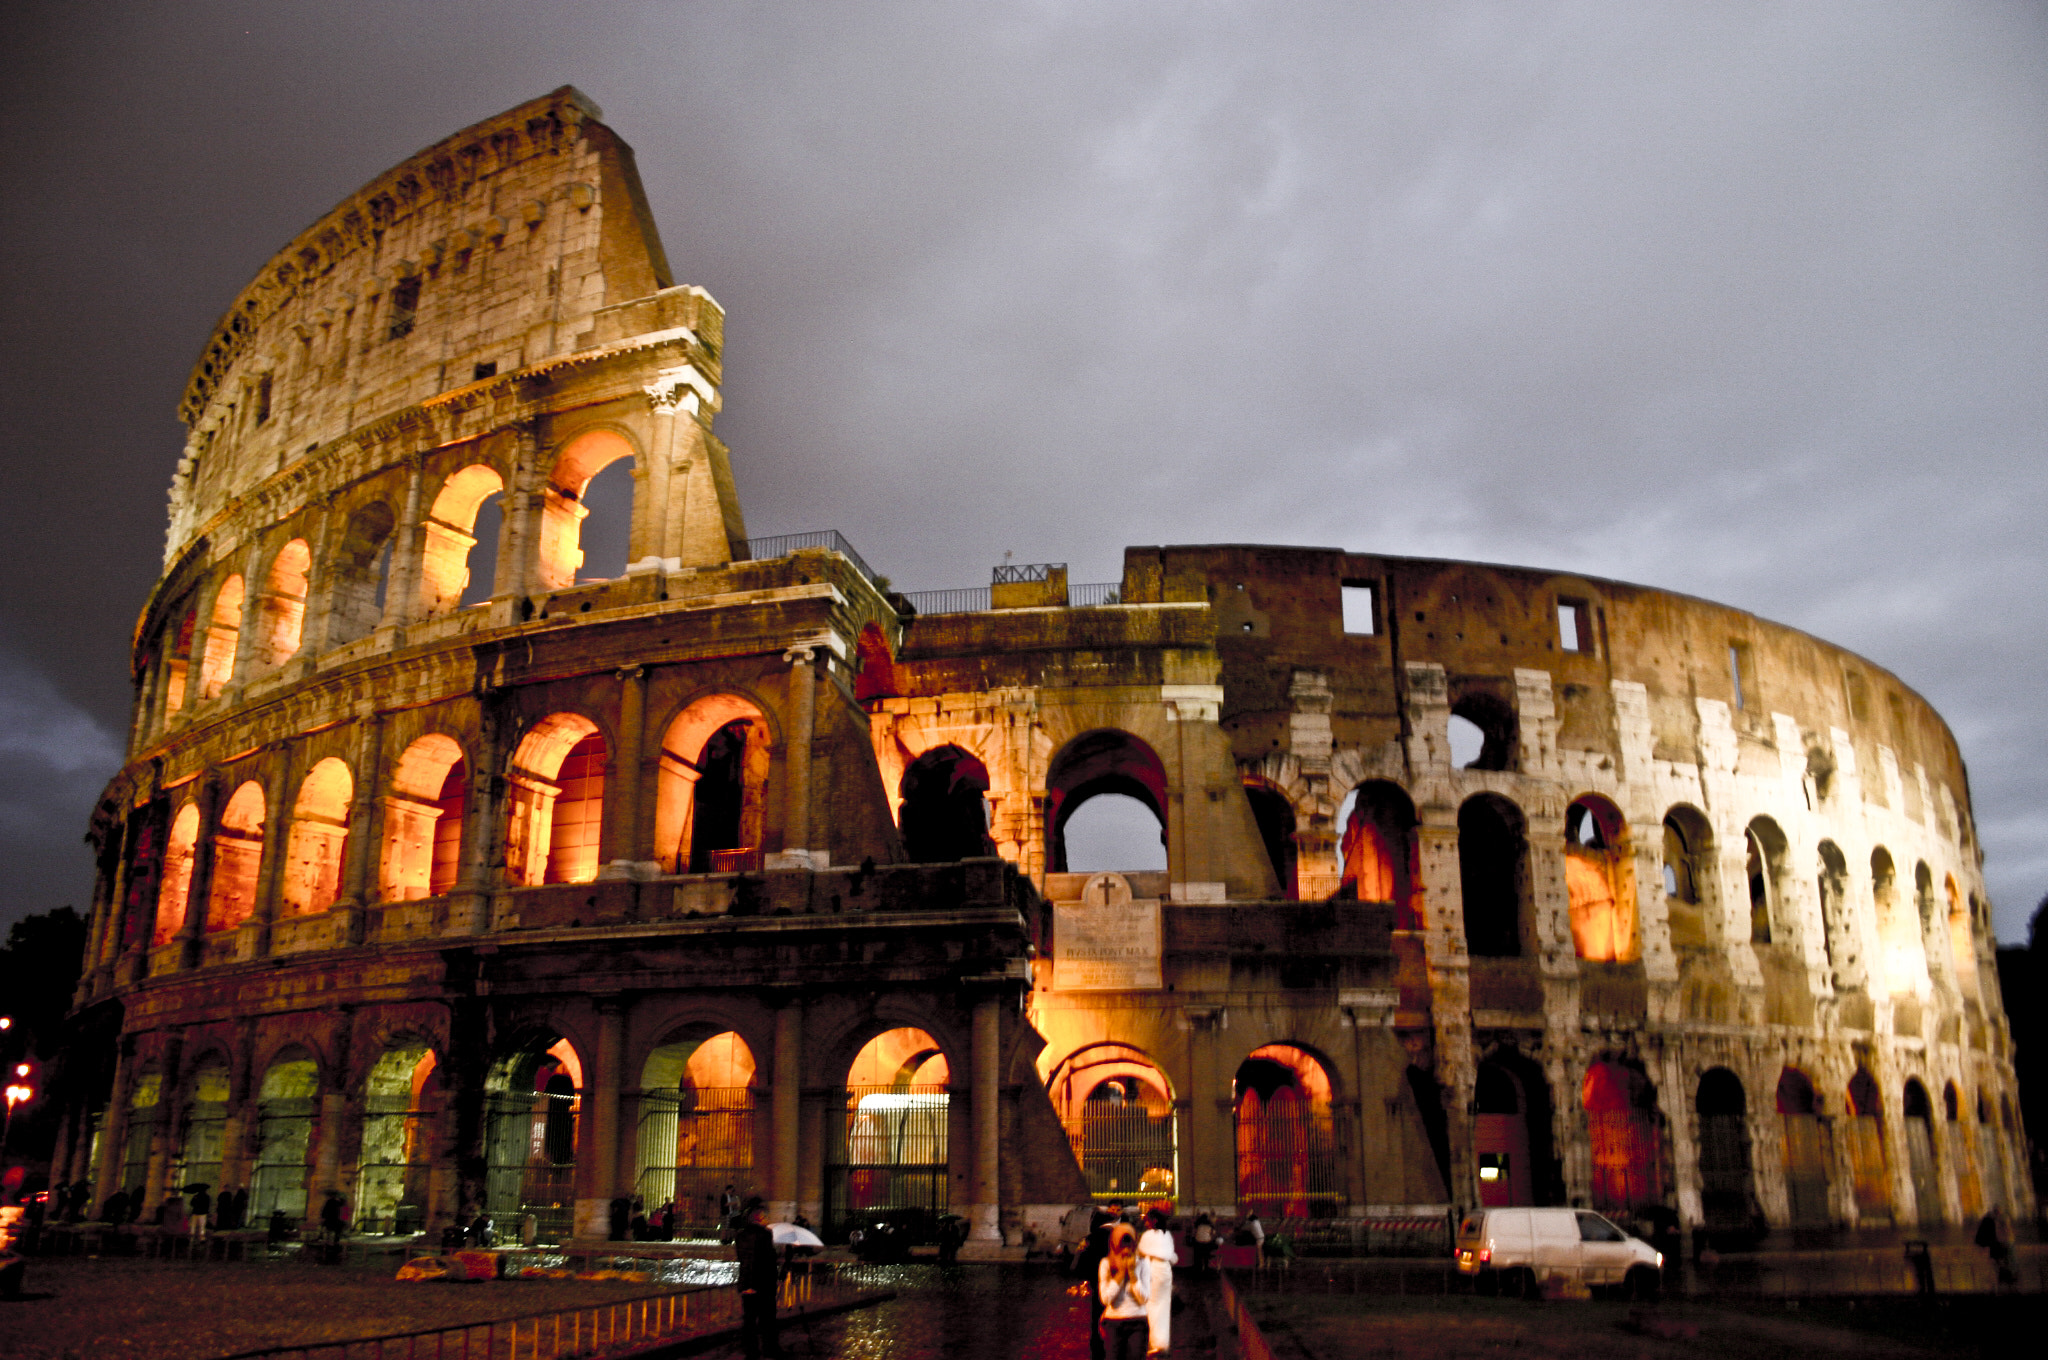 Photograph Coliseum Rome - Night shot by Johnny Smith on 500px